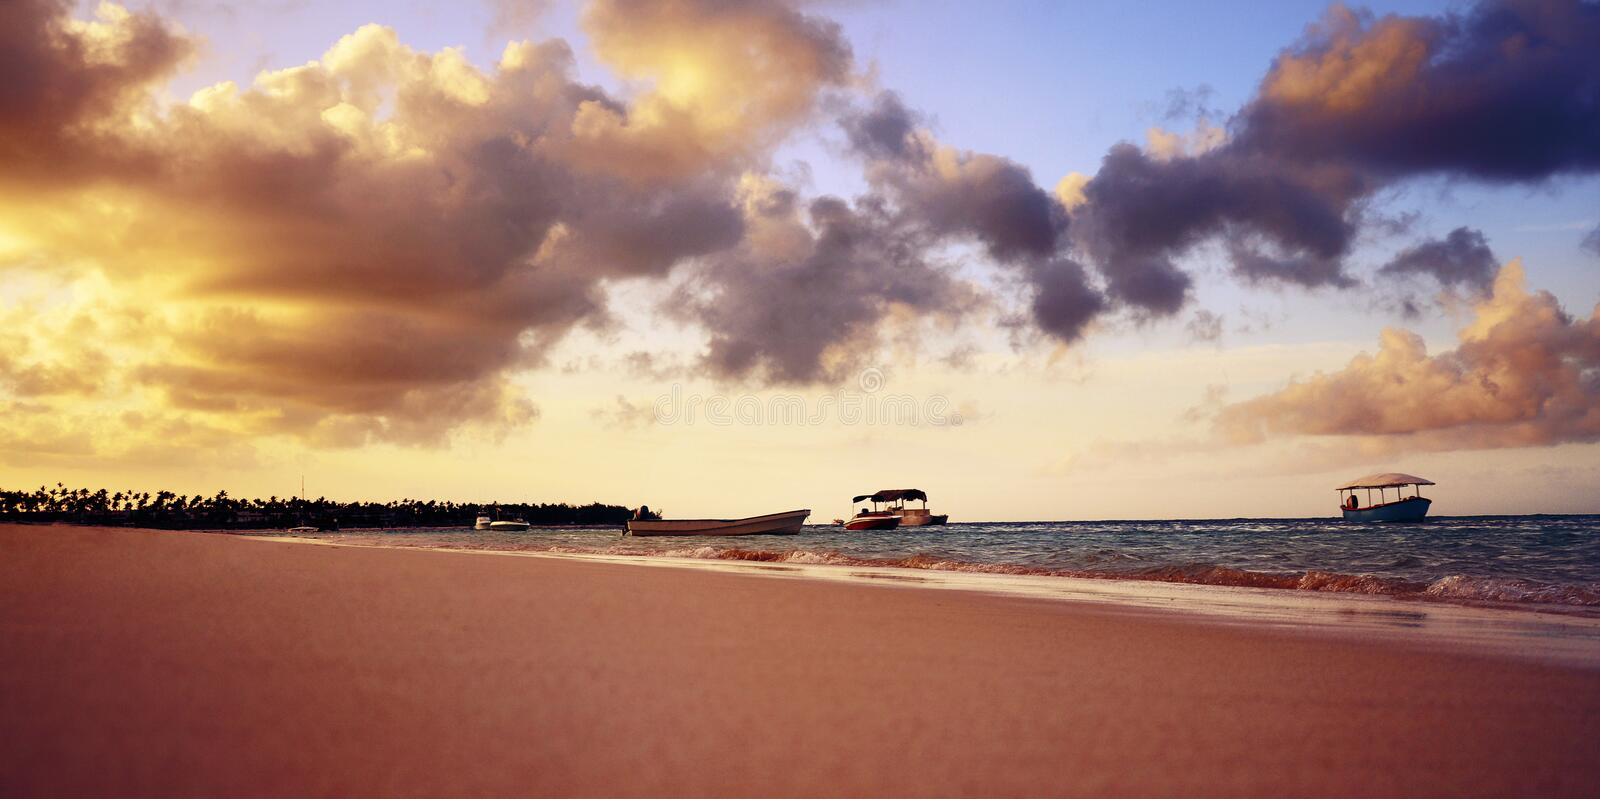 Download Sunset chilout beach stock image. Image of seascape, palm - 26180497